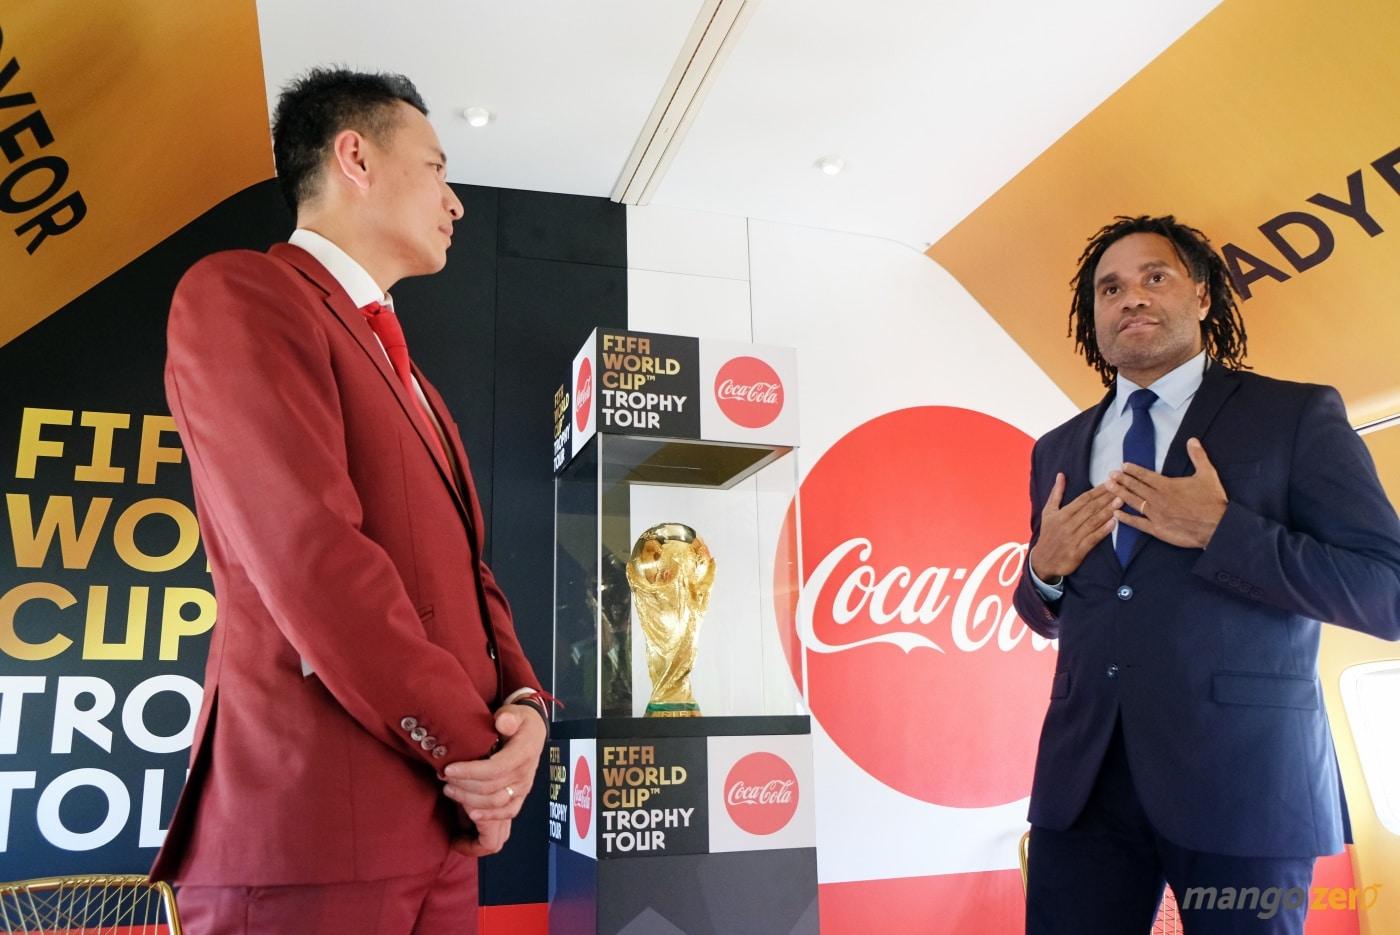 2018-fifa-world-cup-trophy-tour-by-coca-cola-at-phuket-5